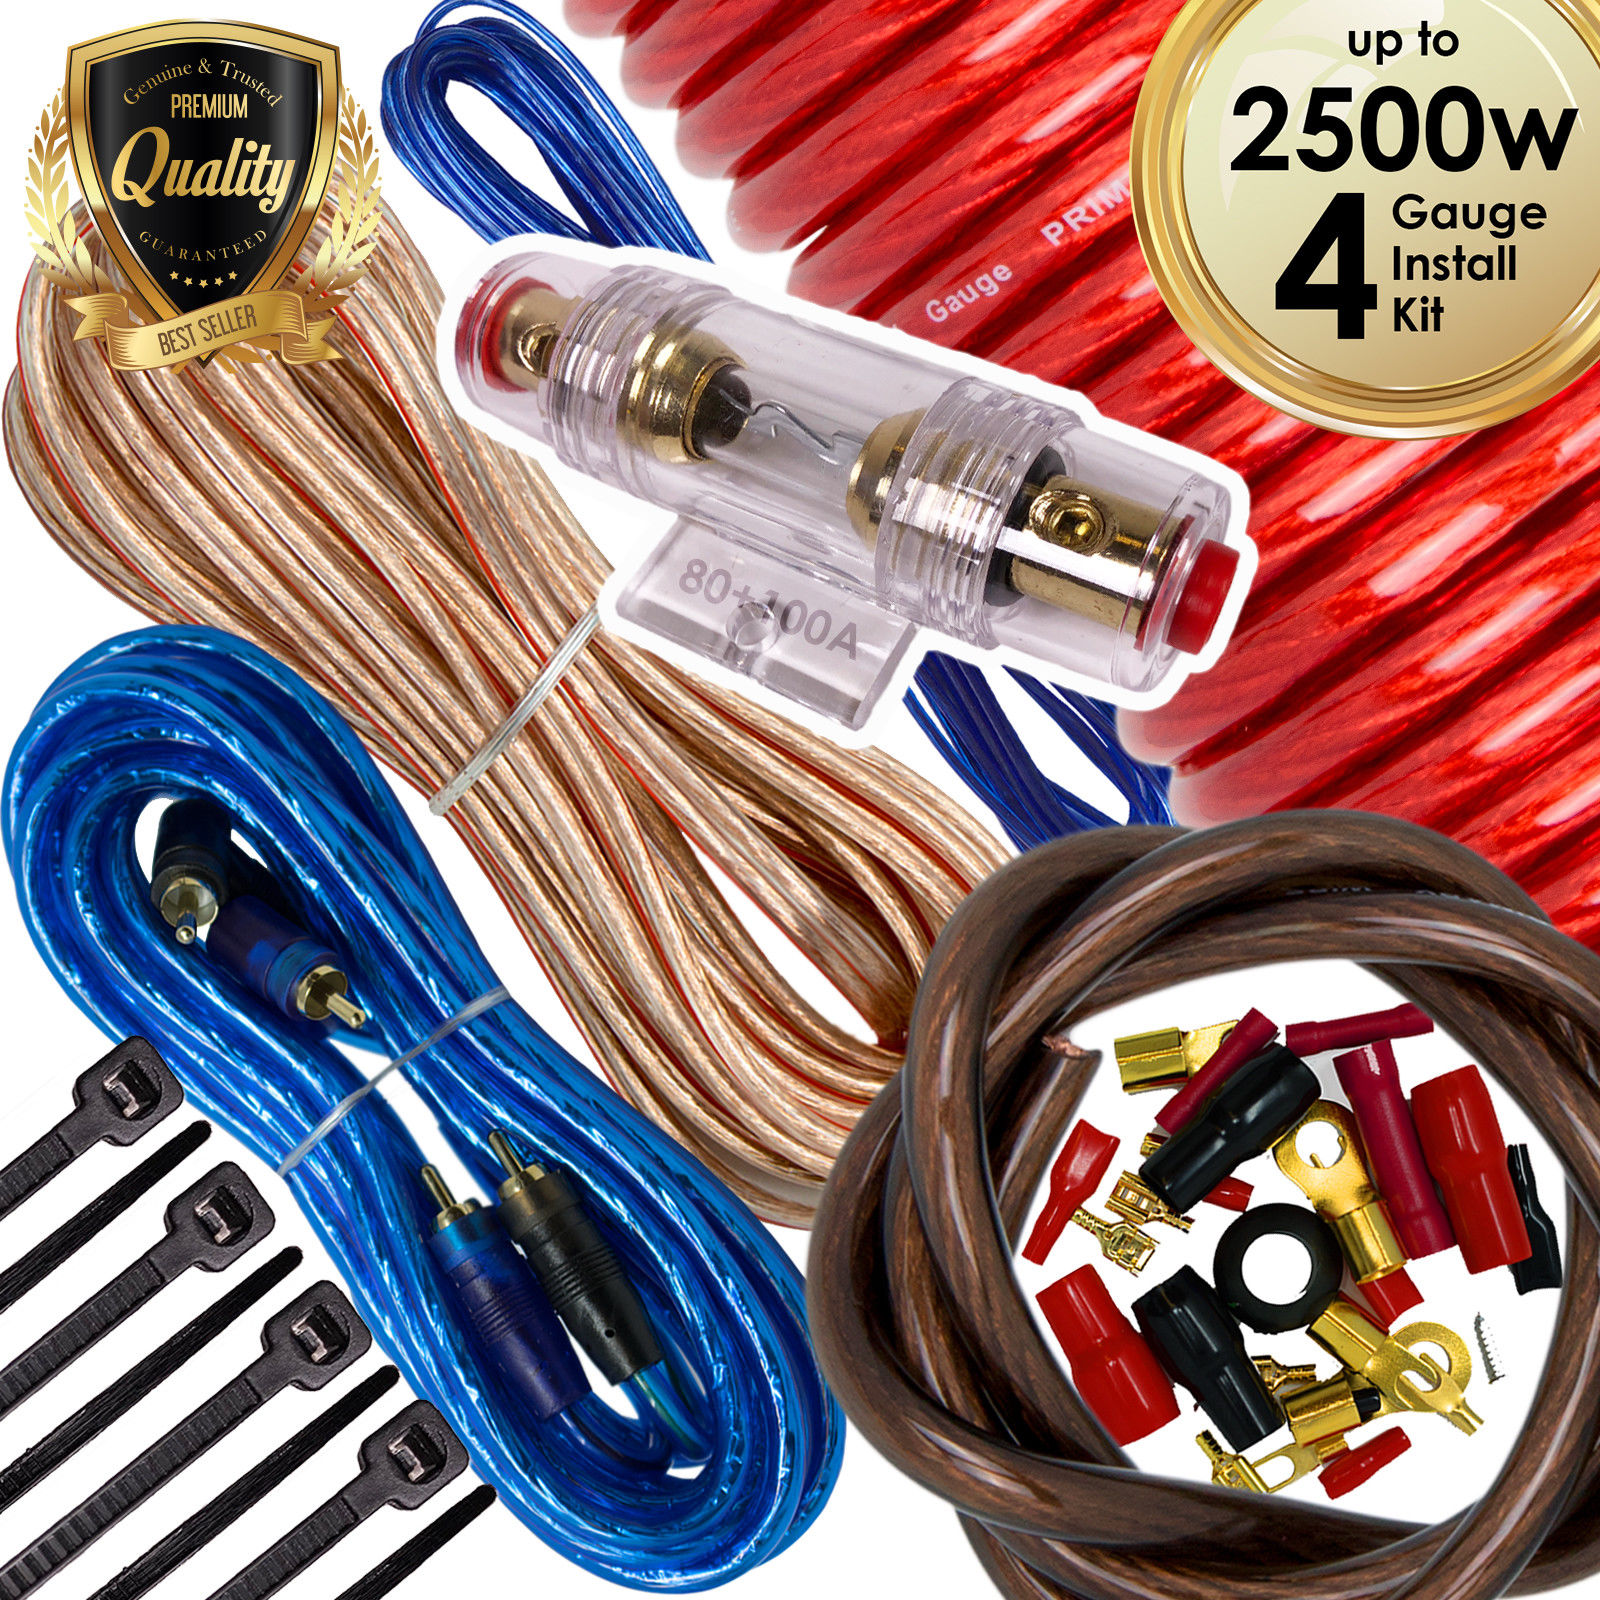 BATTERY CABLE 4 GAUGE 10FT PAIR RED TINNED WIRE 4GA MARINE BOAT ELECTRICAL WIRE